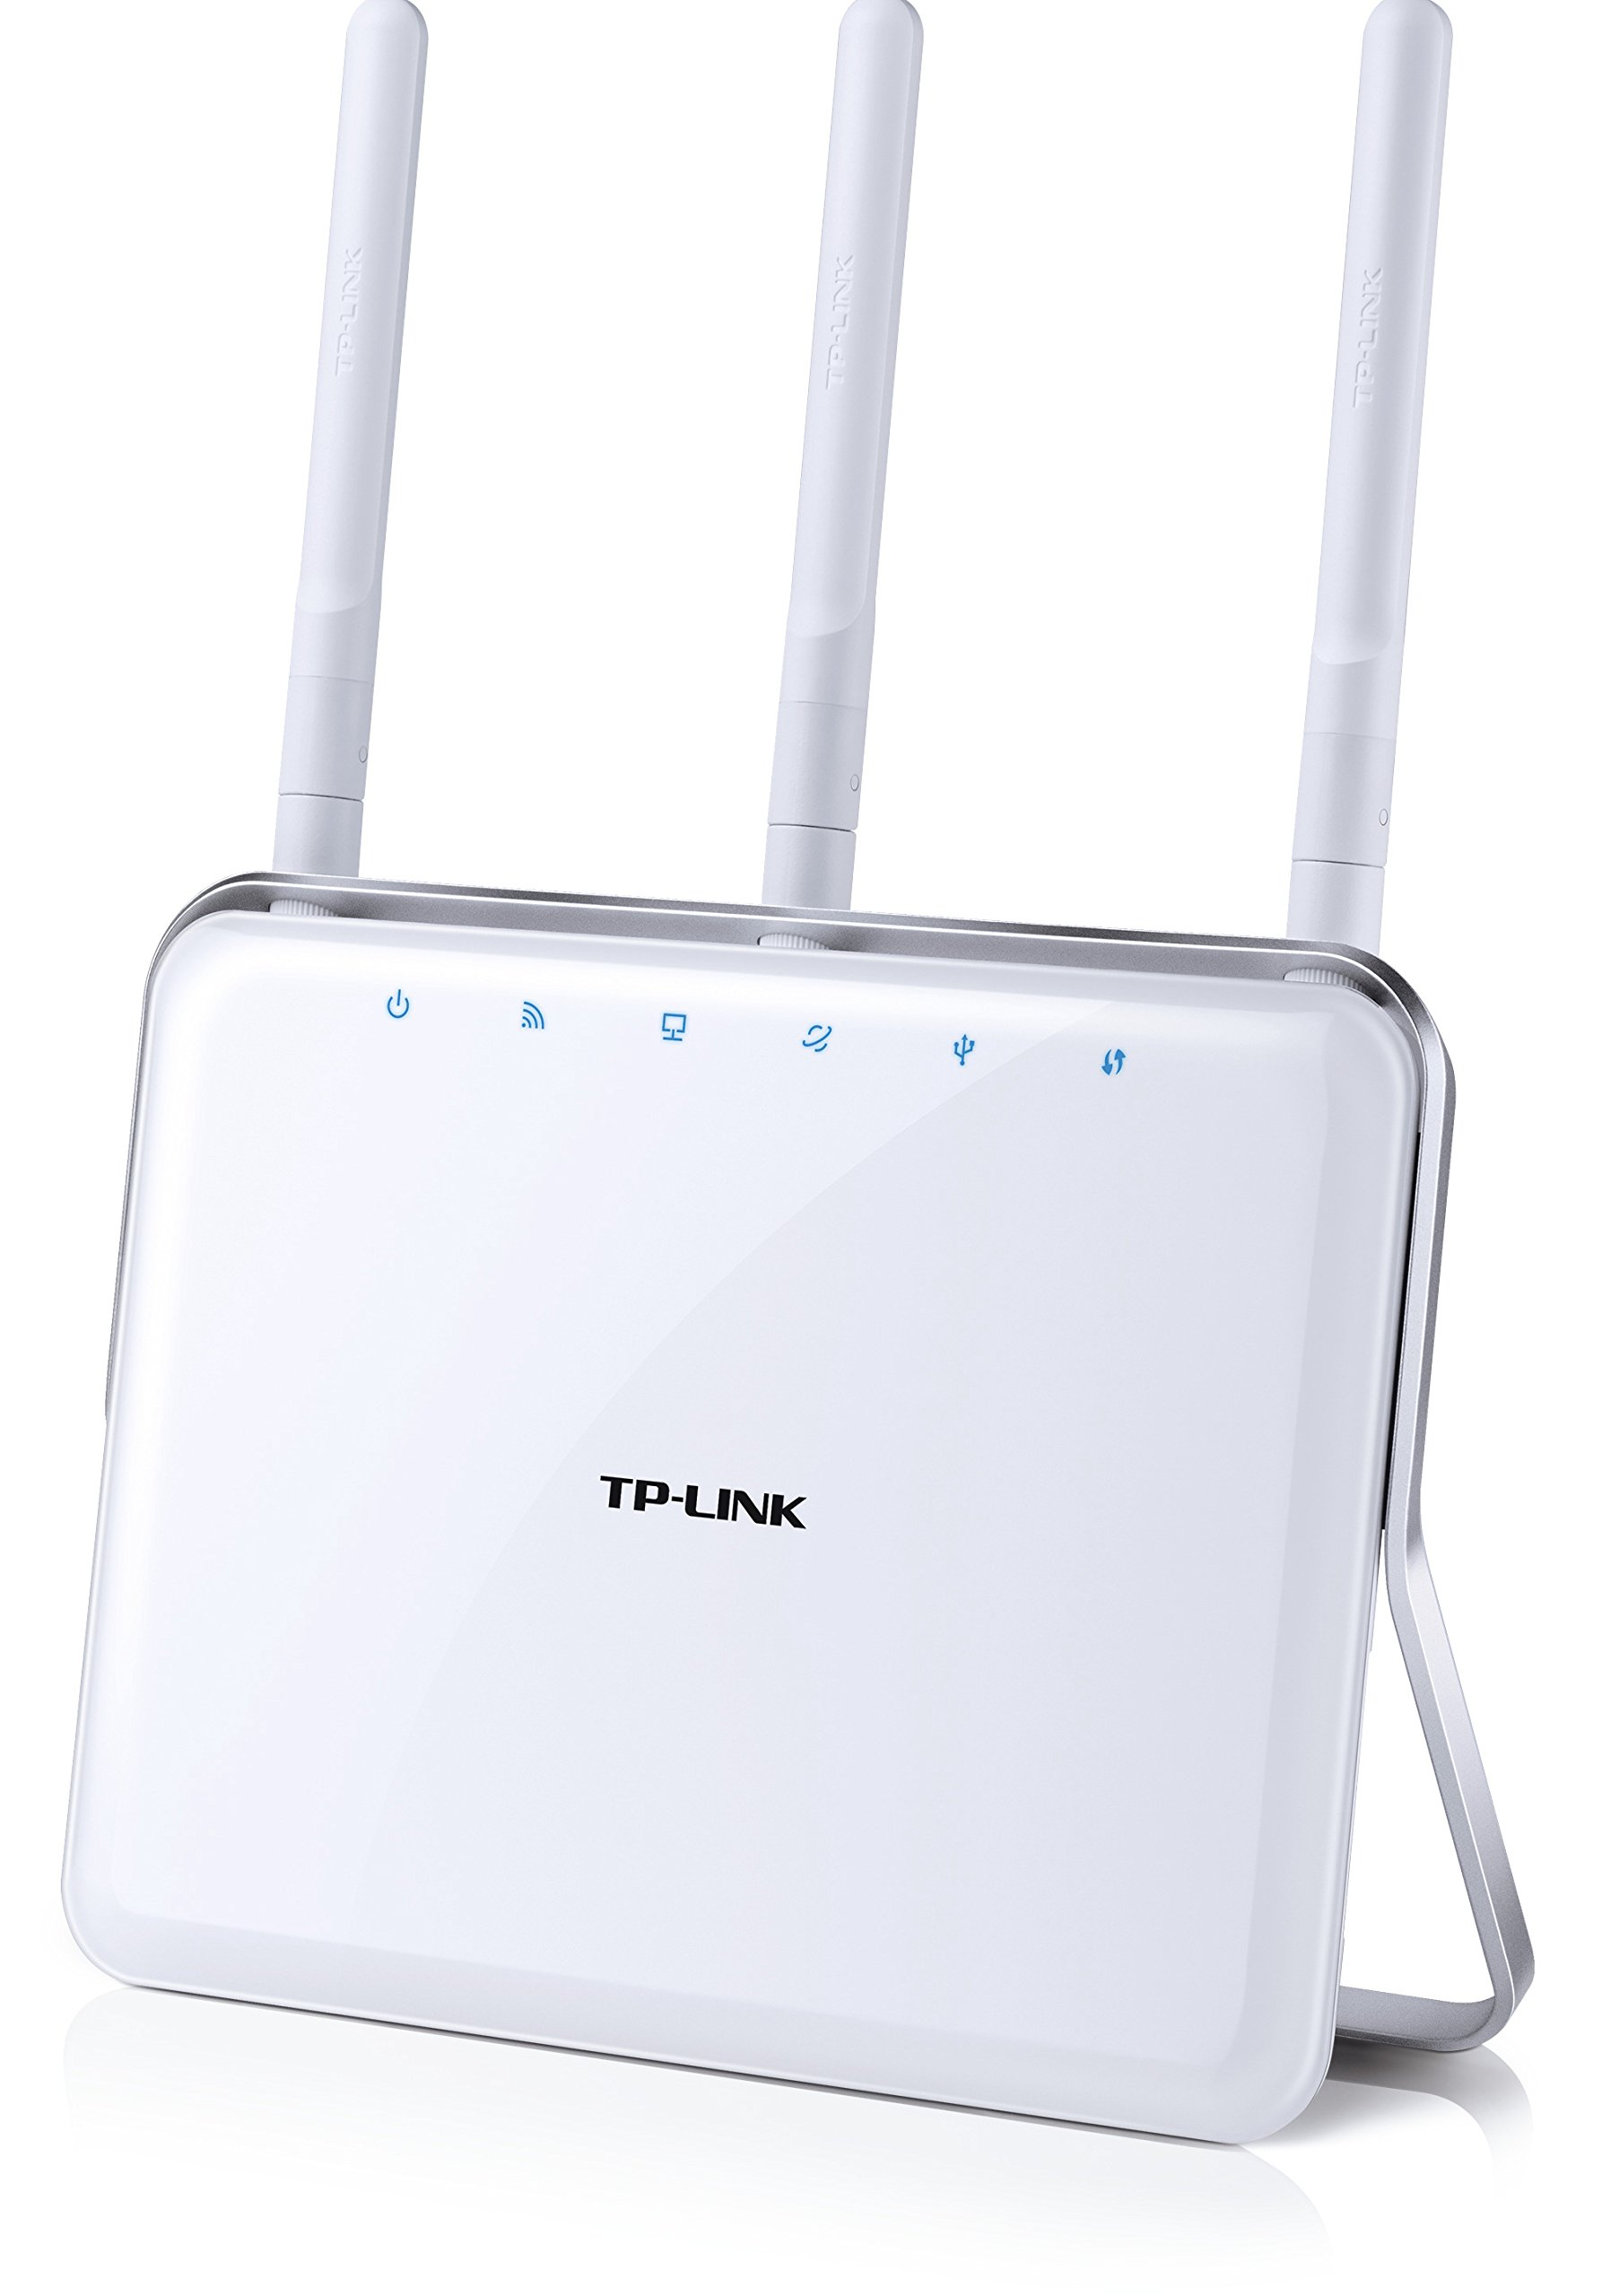 TP-Link AC1750 Wireless Wi-Fi Gigabit Router (Archer C8) by TP-Link